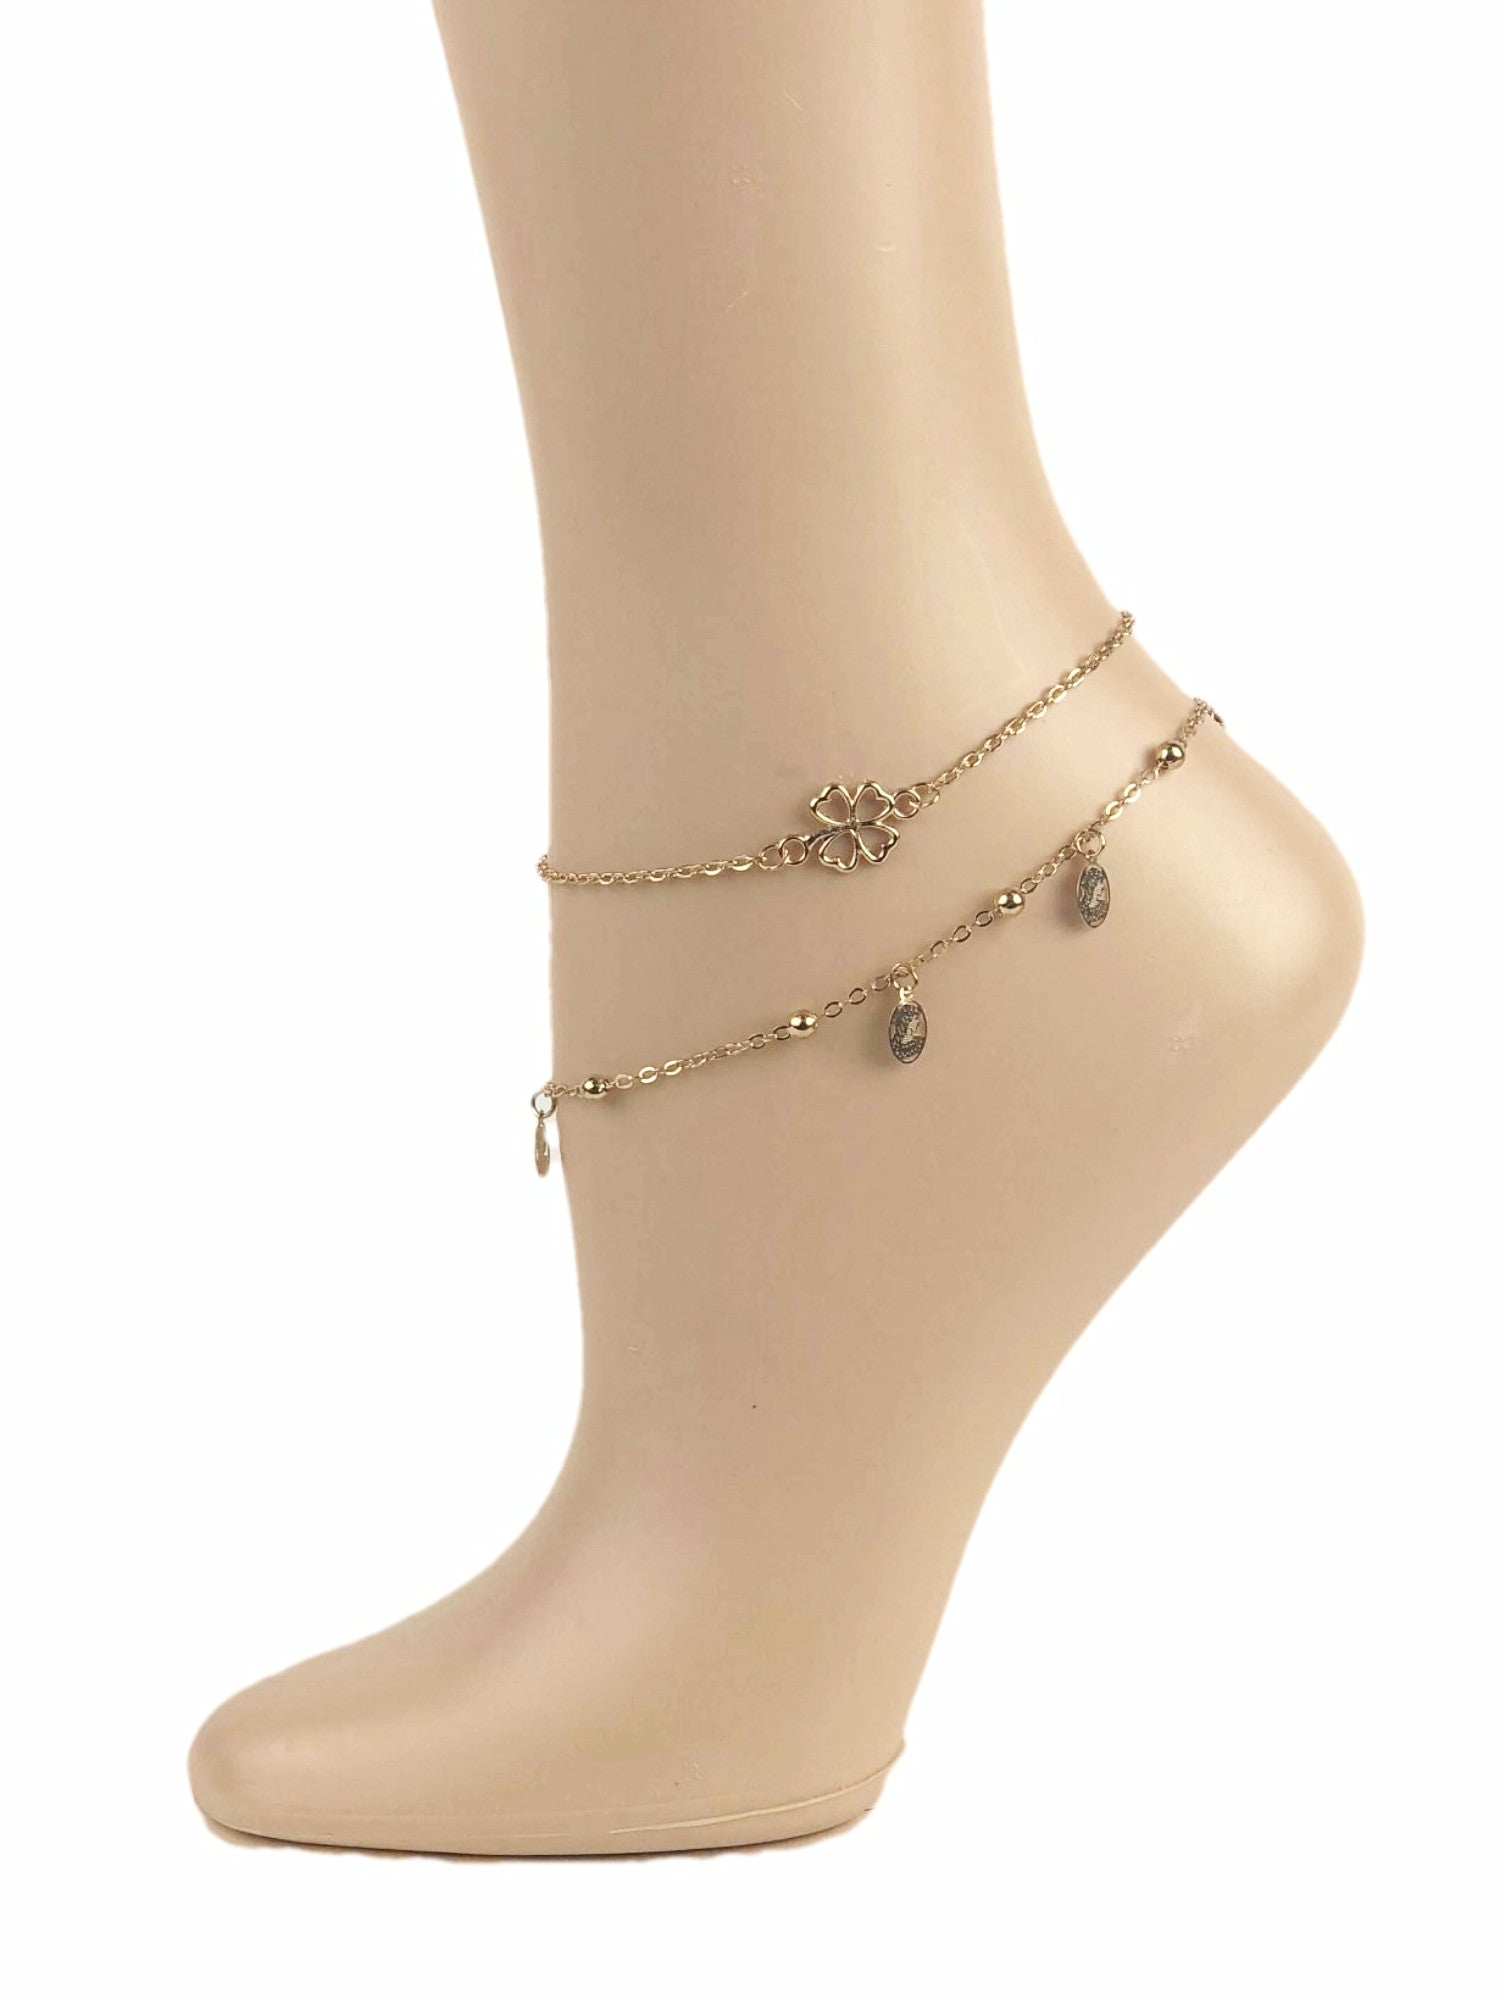 Mona Anklet - Global Trendz Fashion®